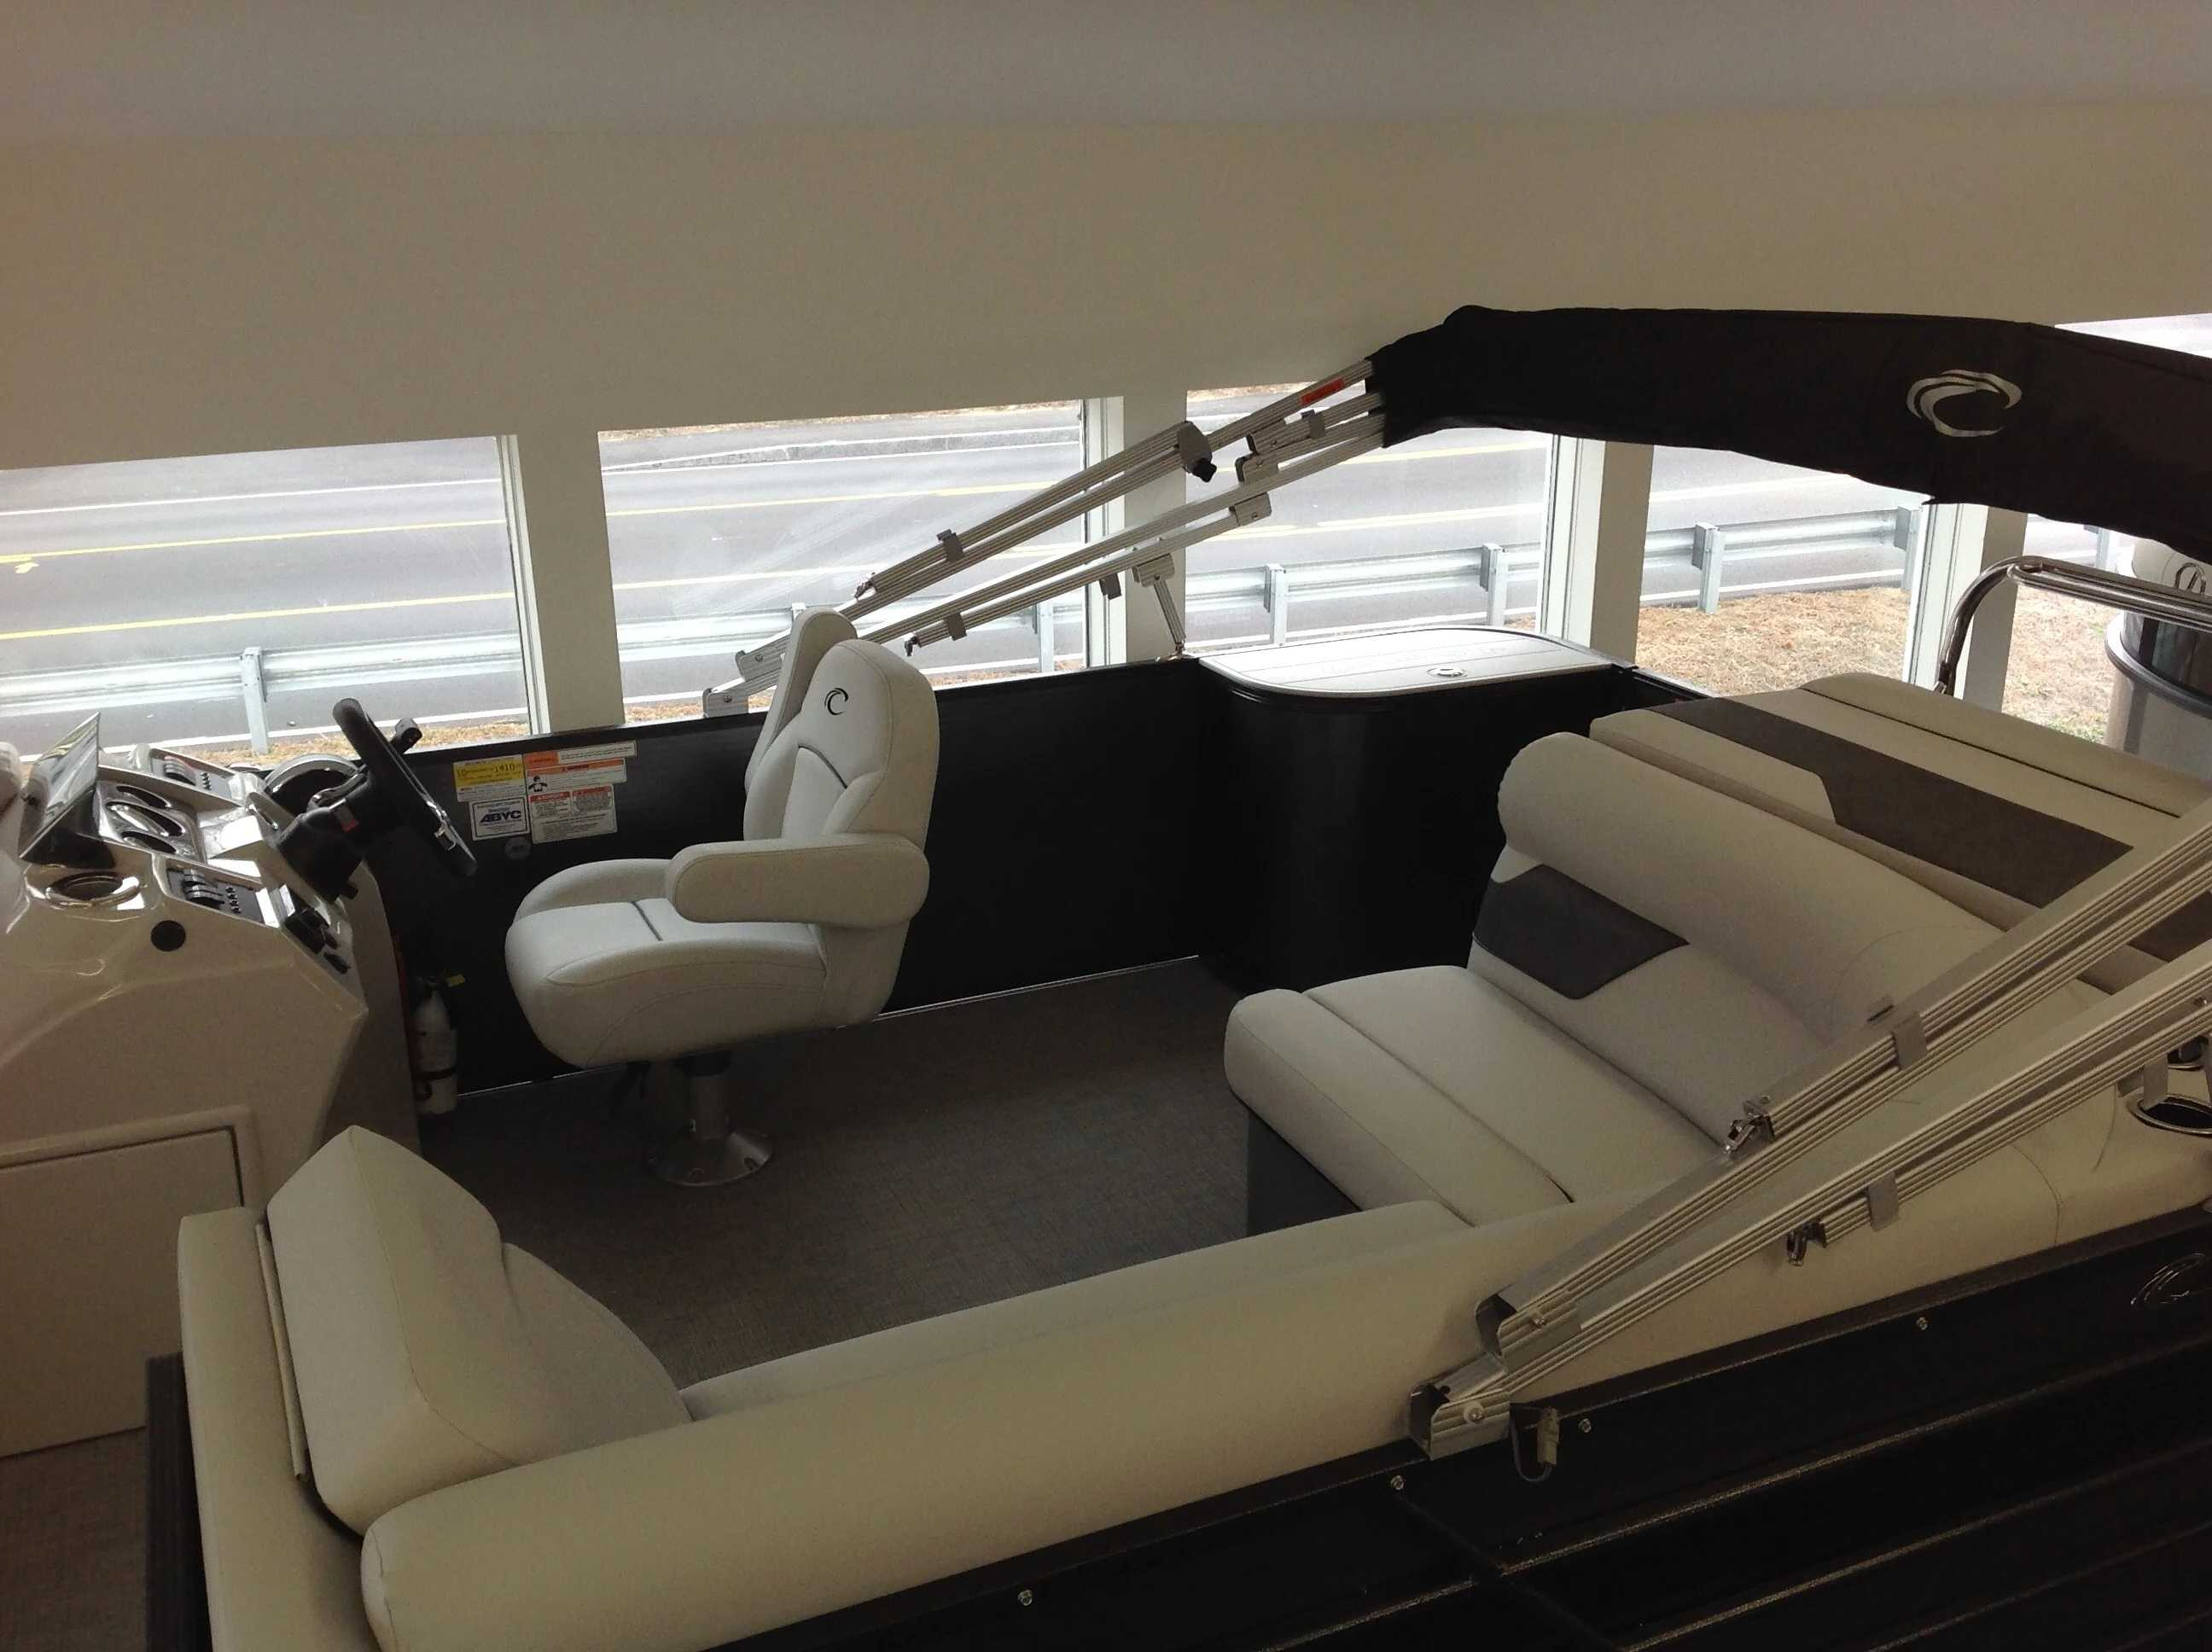 2021 Crest boat for sale, model of the boat is Cl Lx 200l & Image # 4 of 9